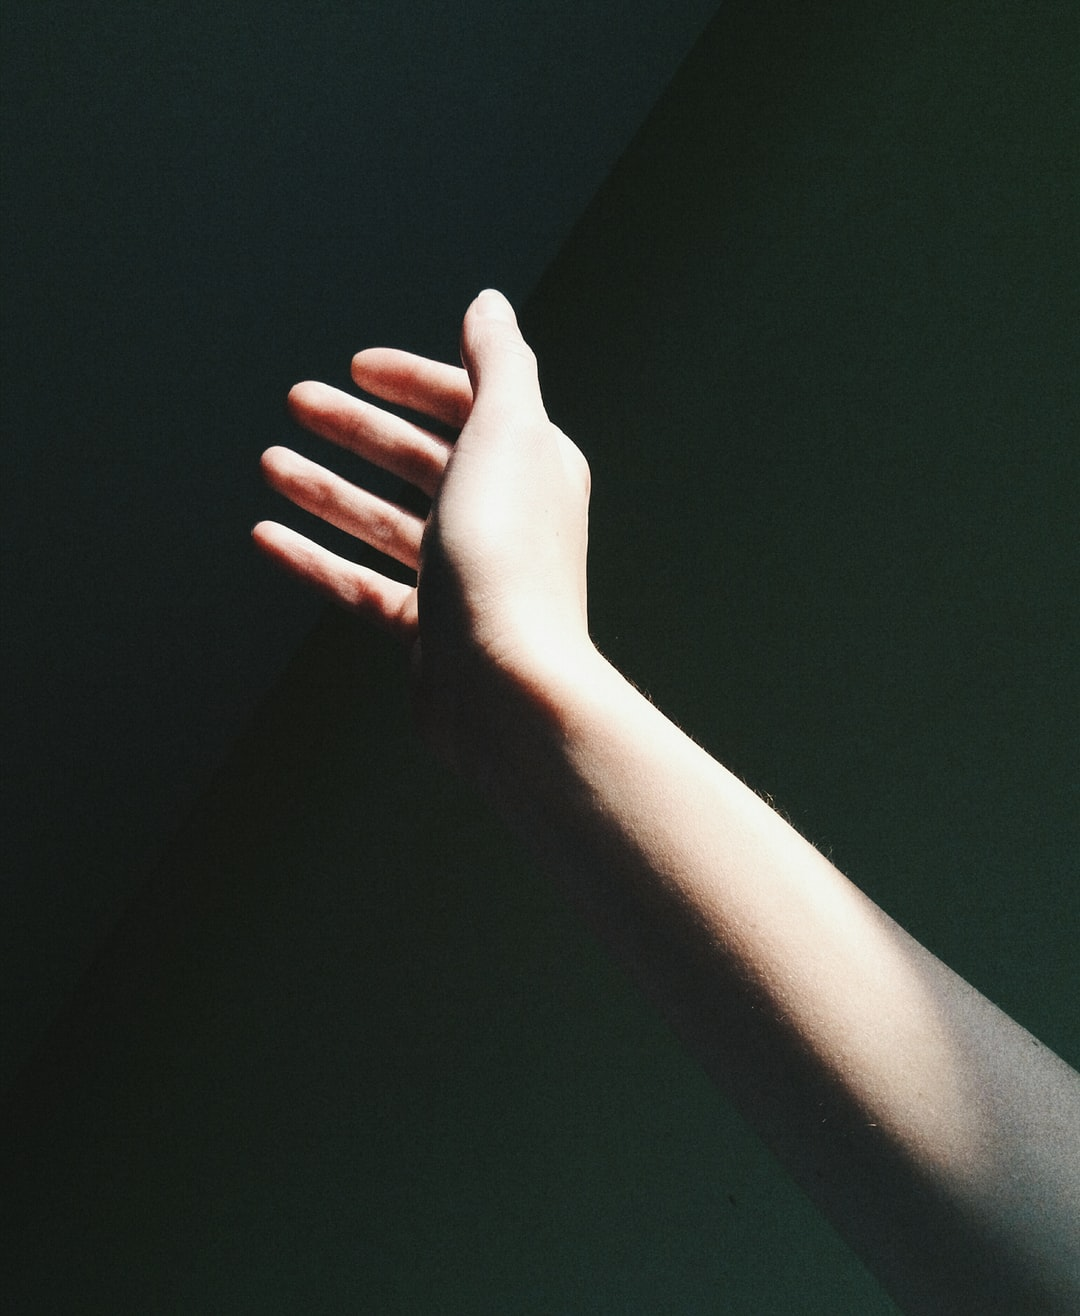 My favorite part of the human body is hands. They are charming.